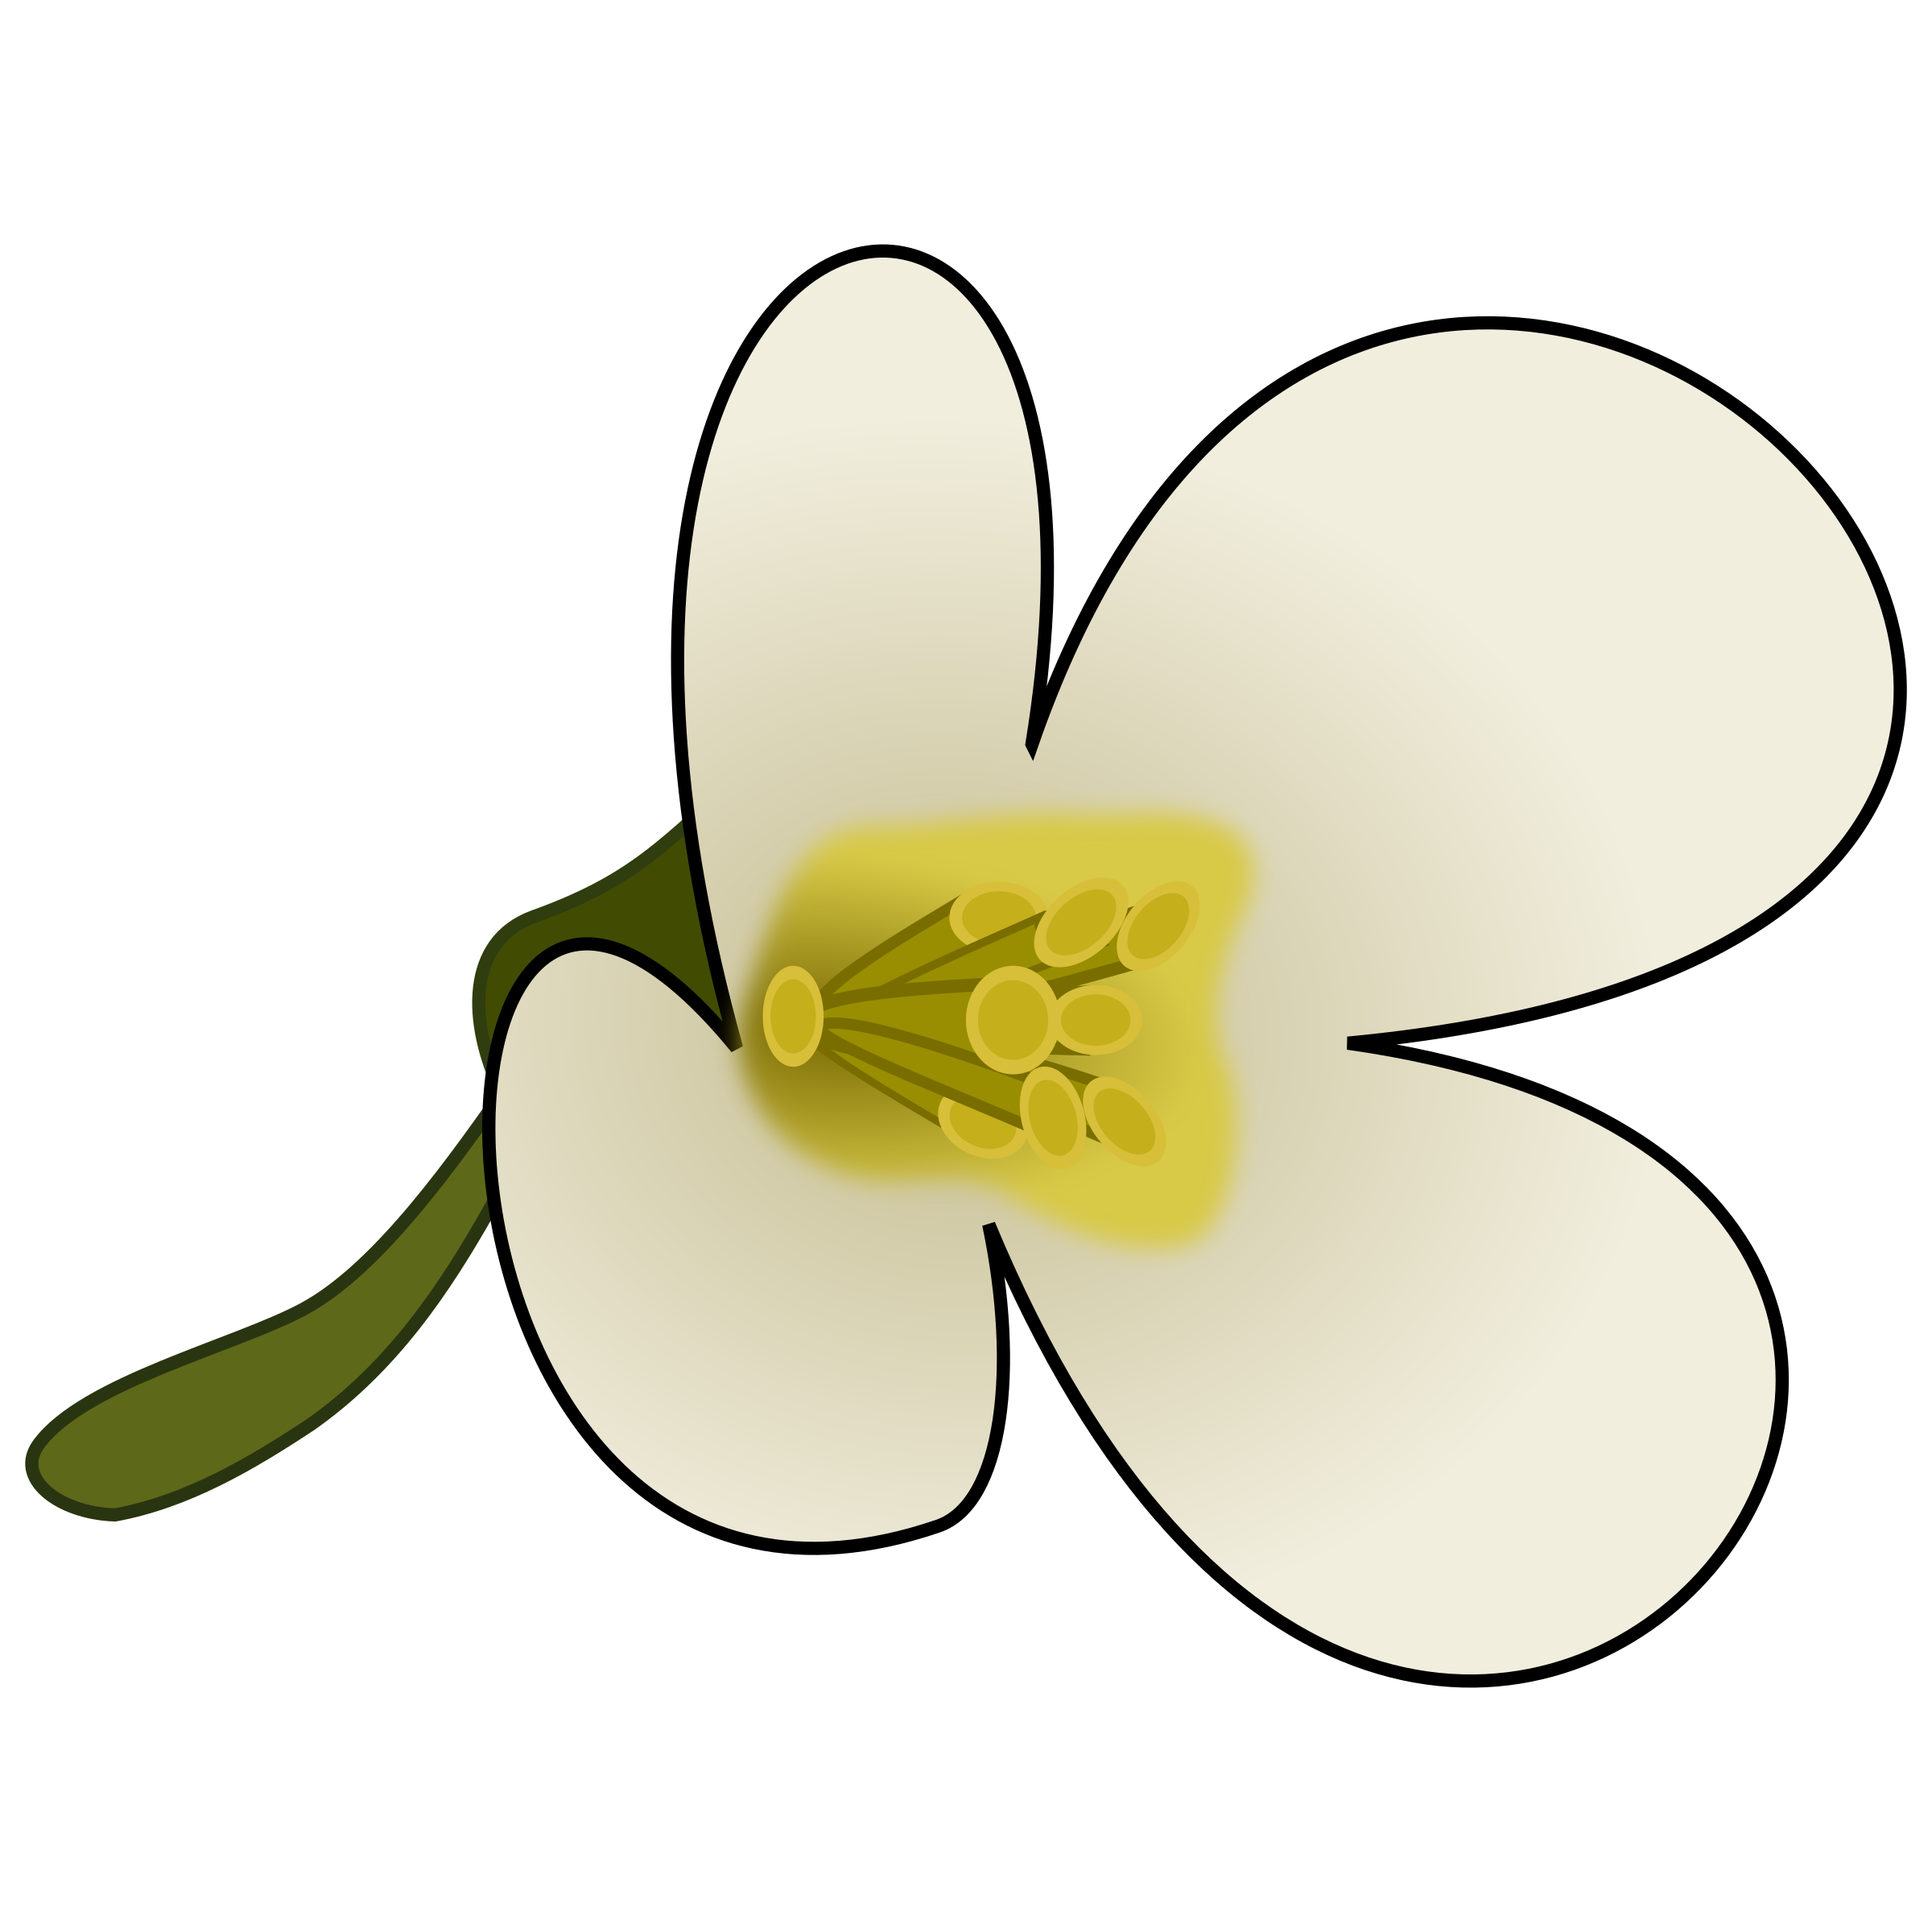 Dogwood flower clipart image library download Clipart - Thaliana Flower image library download